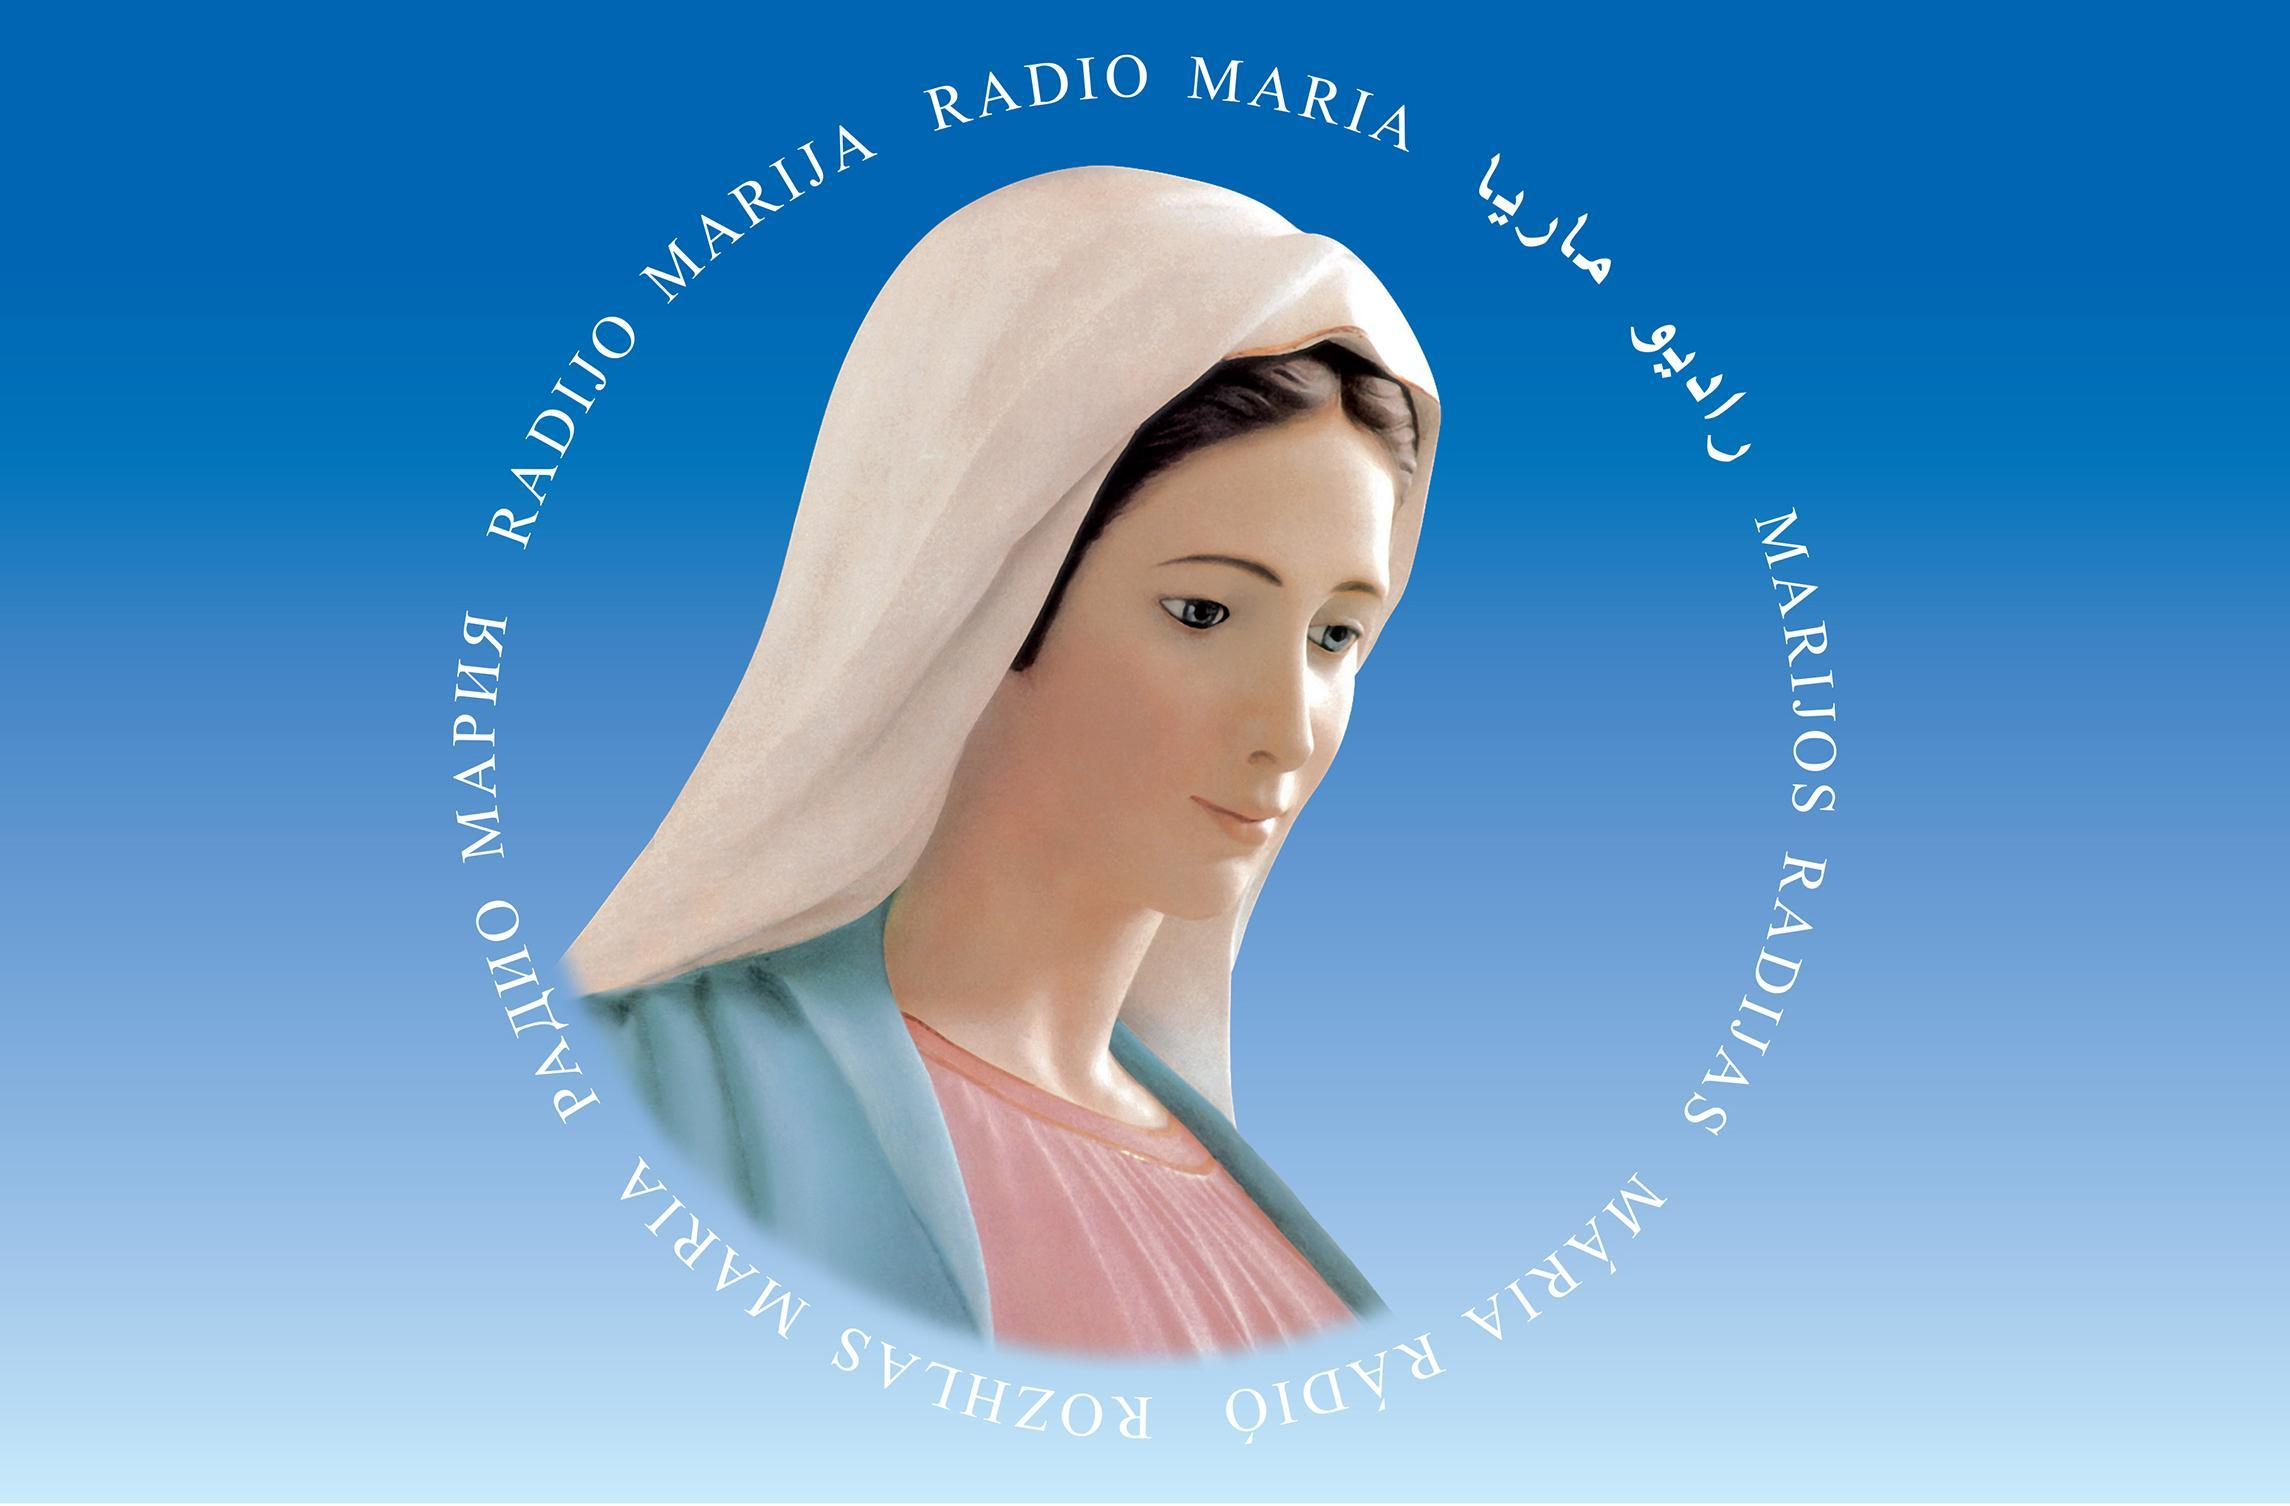 Radio Maria Malawi on pilgrimage to the Sanctuary of Fatima